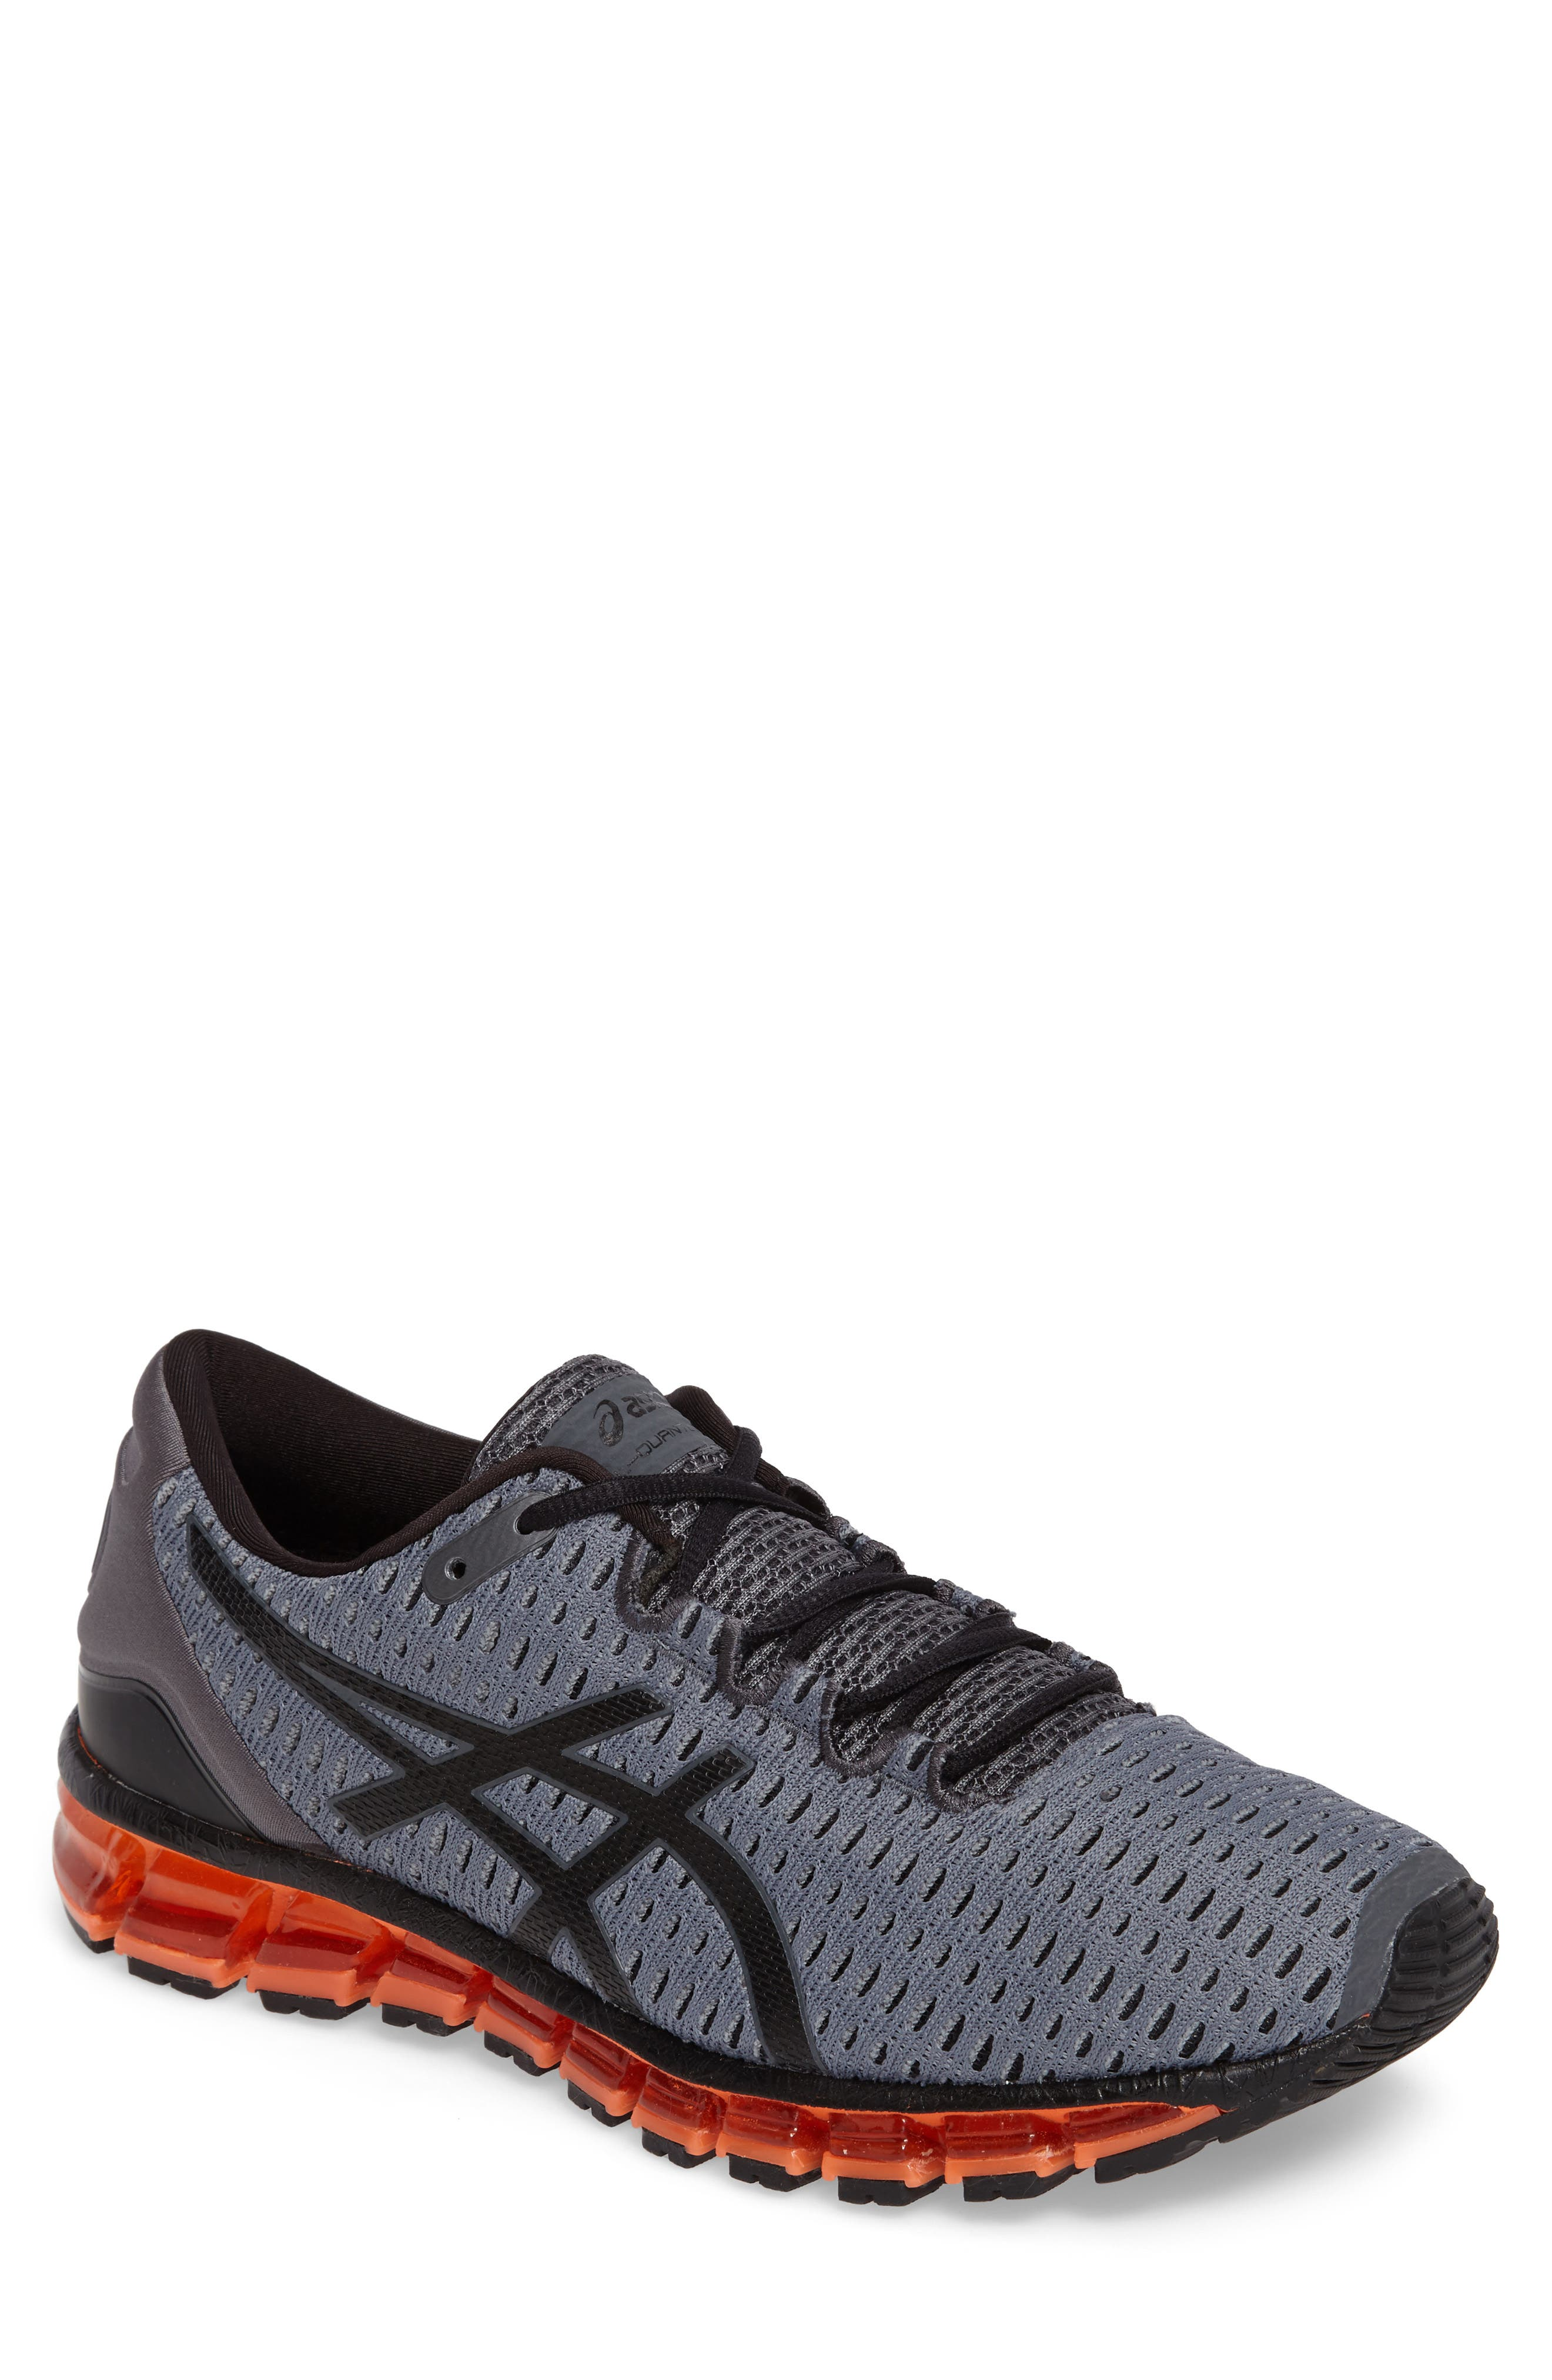 GEL-Quantum 360 Running Shoe,                         Main,                         color, 001